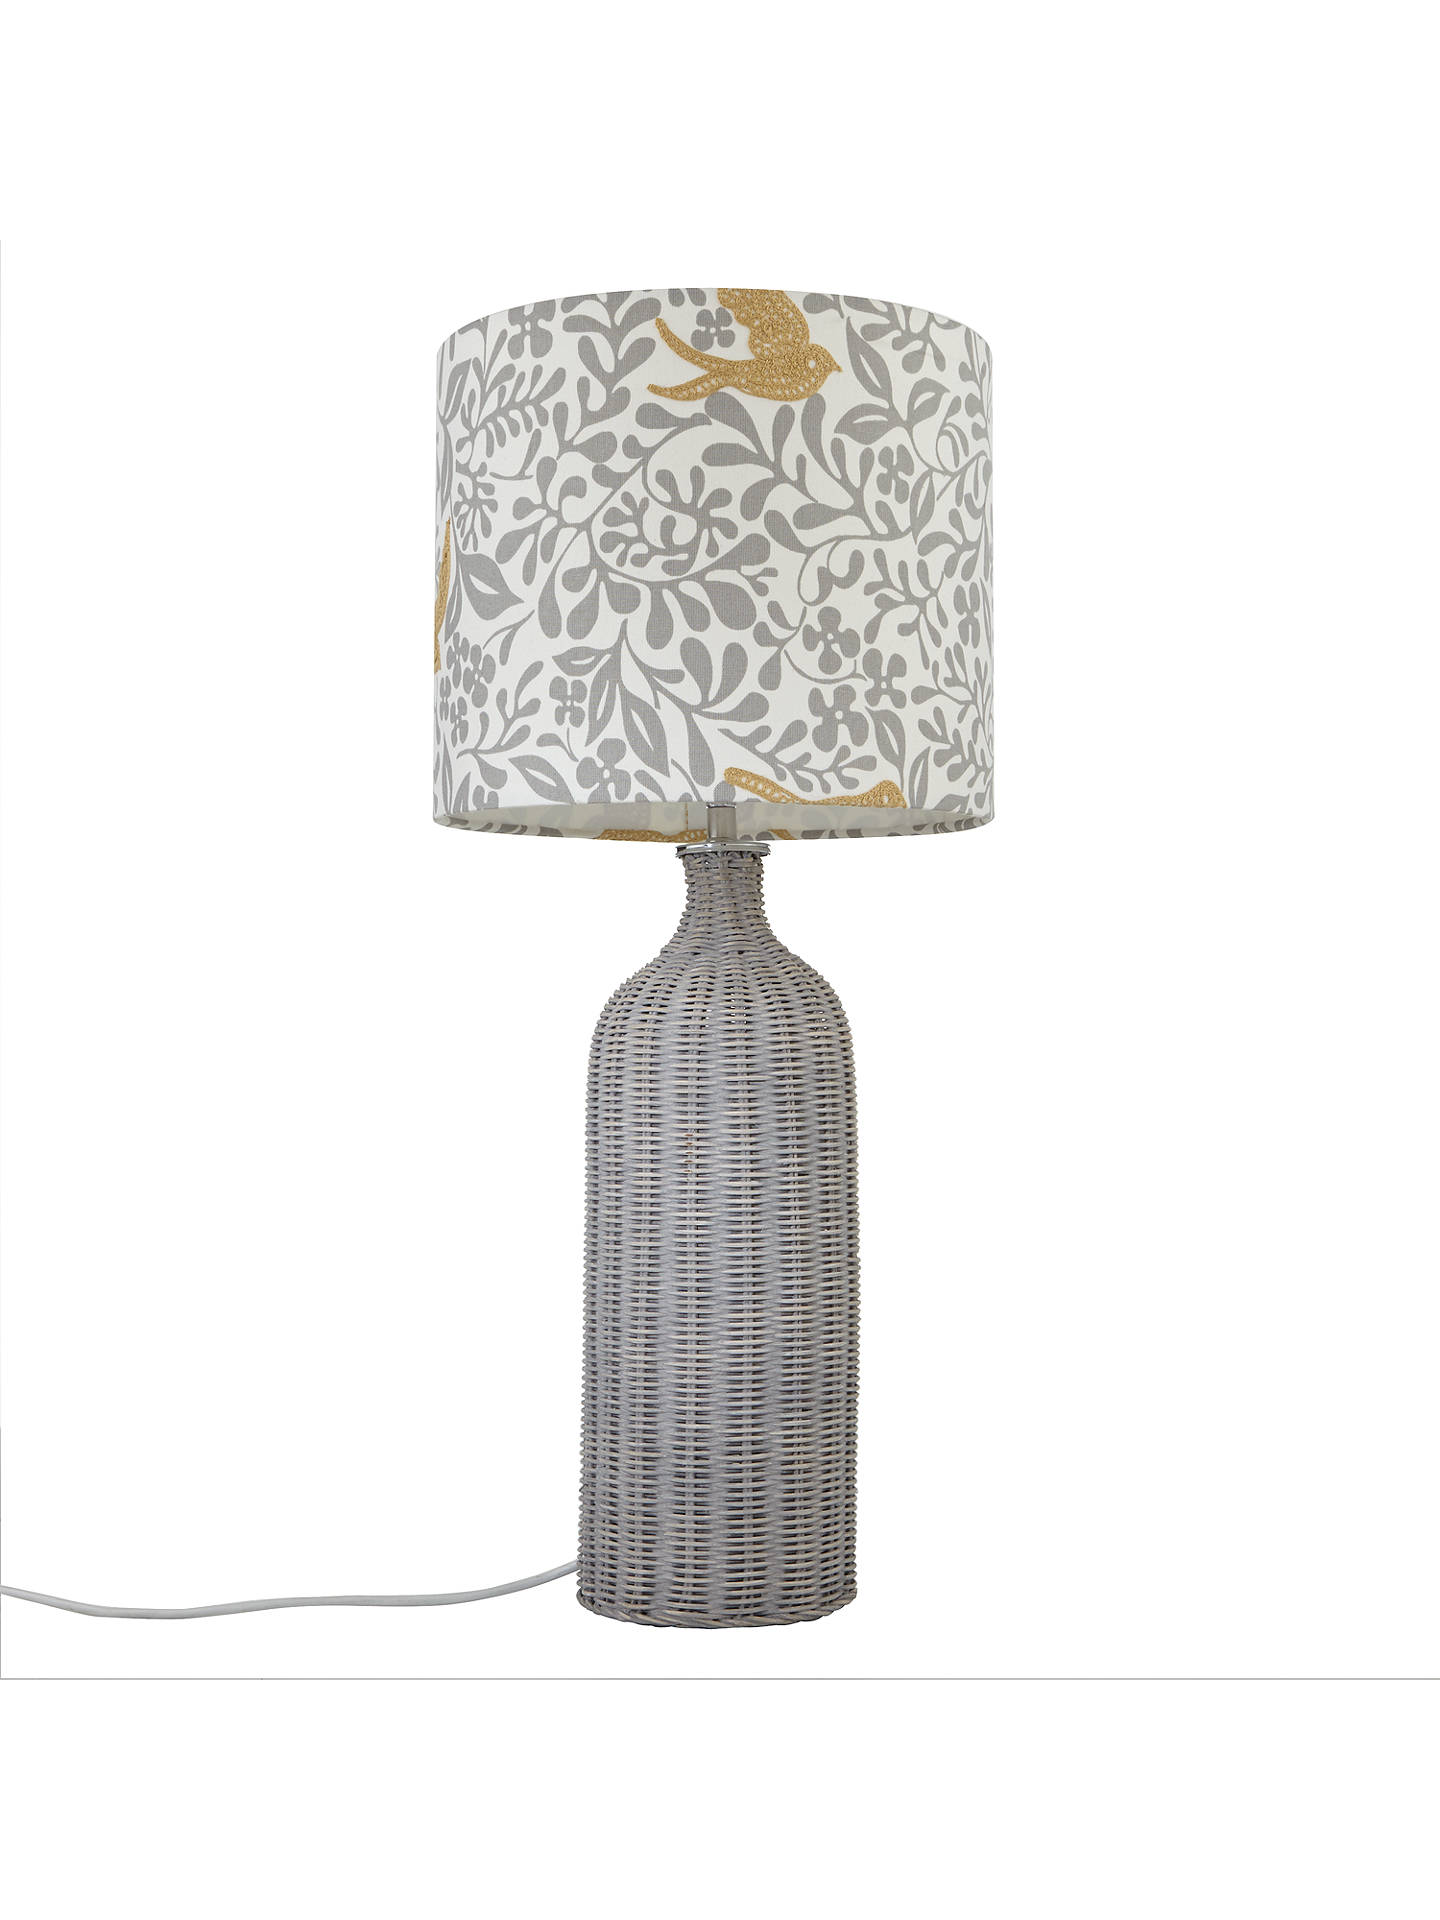 BuyJohn Lewis Croft Barnaby Lamp Base, Grey Online at johnlewis.com